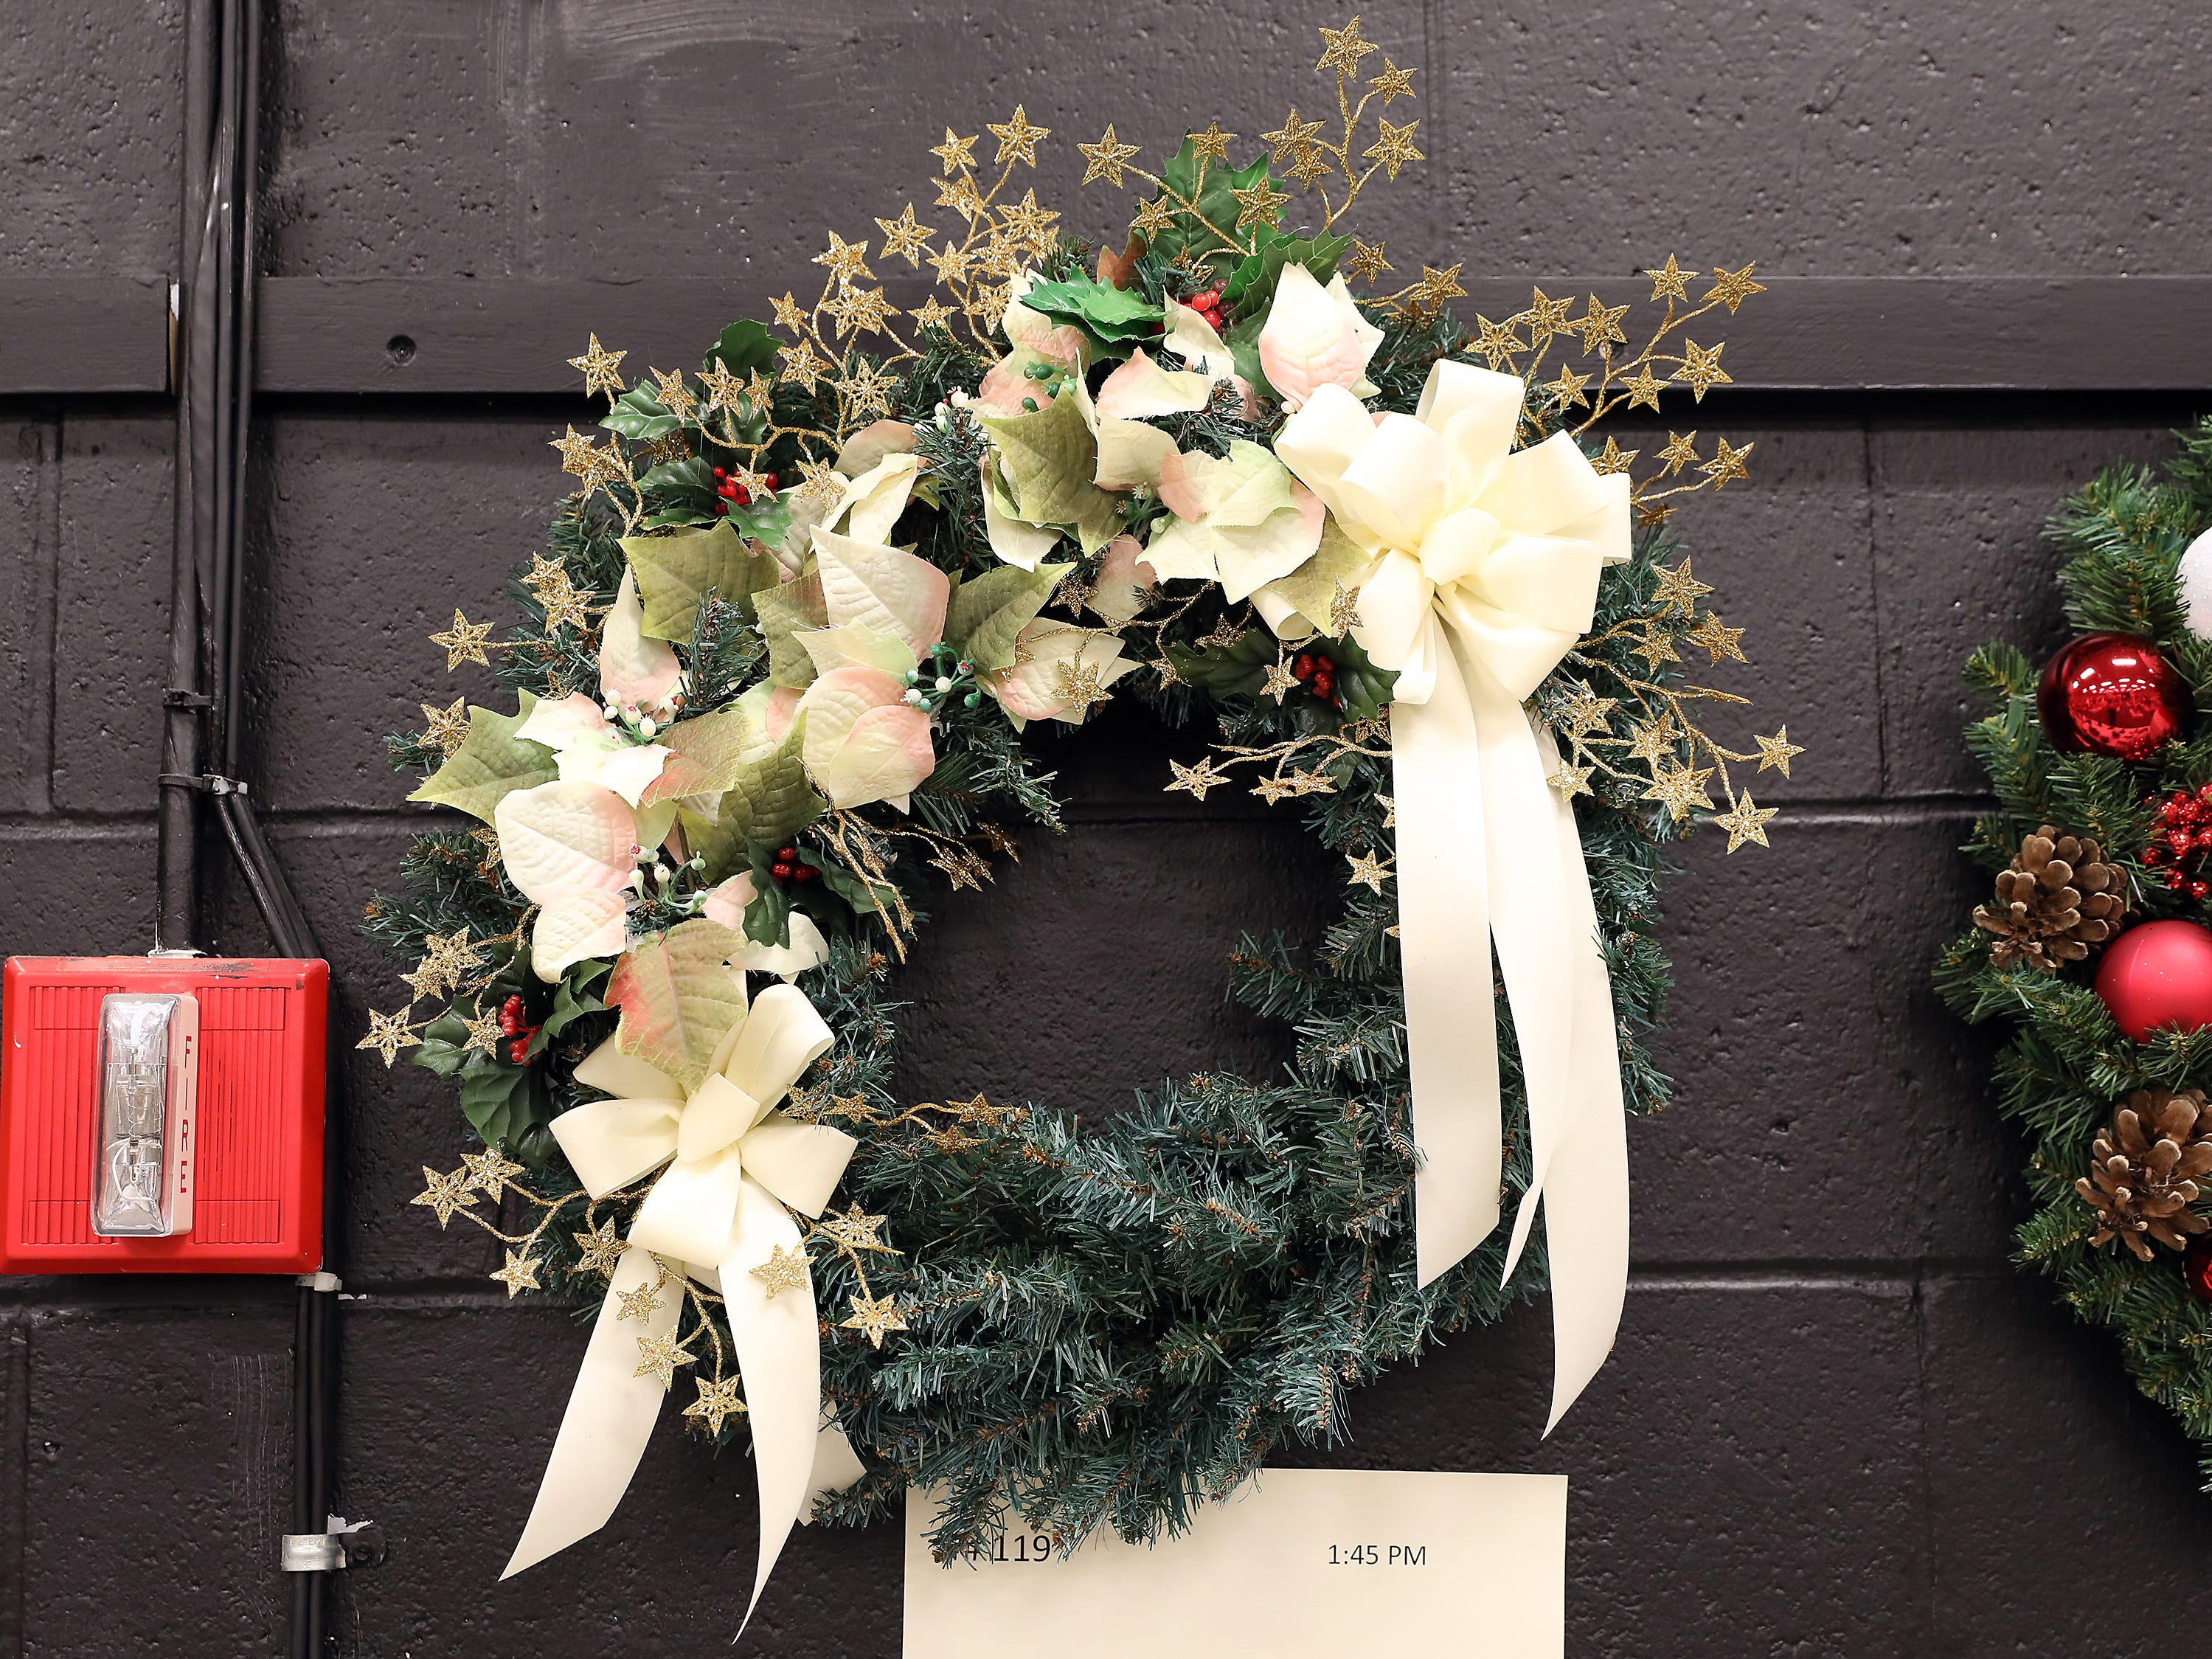 "119	1:45 PM	Mary Ann Bucci	Wreath	This Season	20"" green pine wreath decorated with ivory poinsettia and gold trim.		Fall and Winter paintings of the Patio Shops in Dresden by Mary Ann Bucci."